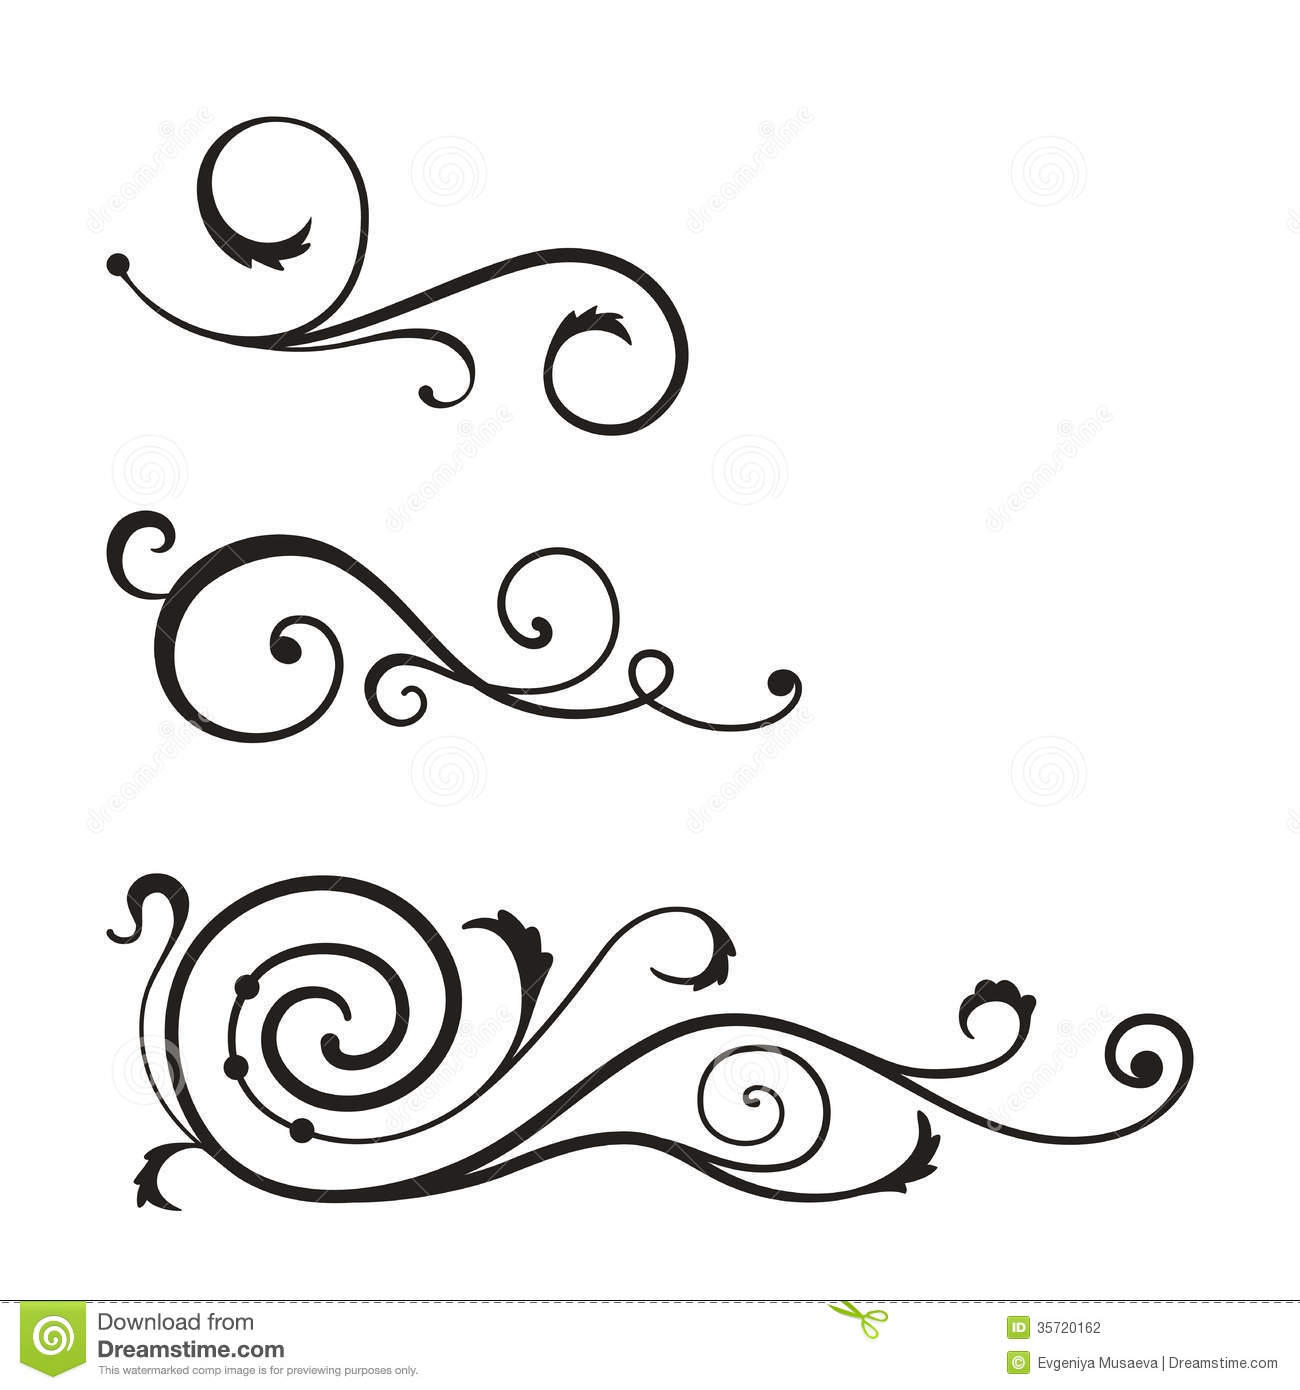 Simple Swirl Designs Stencils : Wings vector swirl pattern images